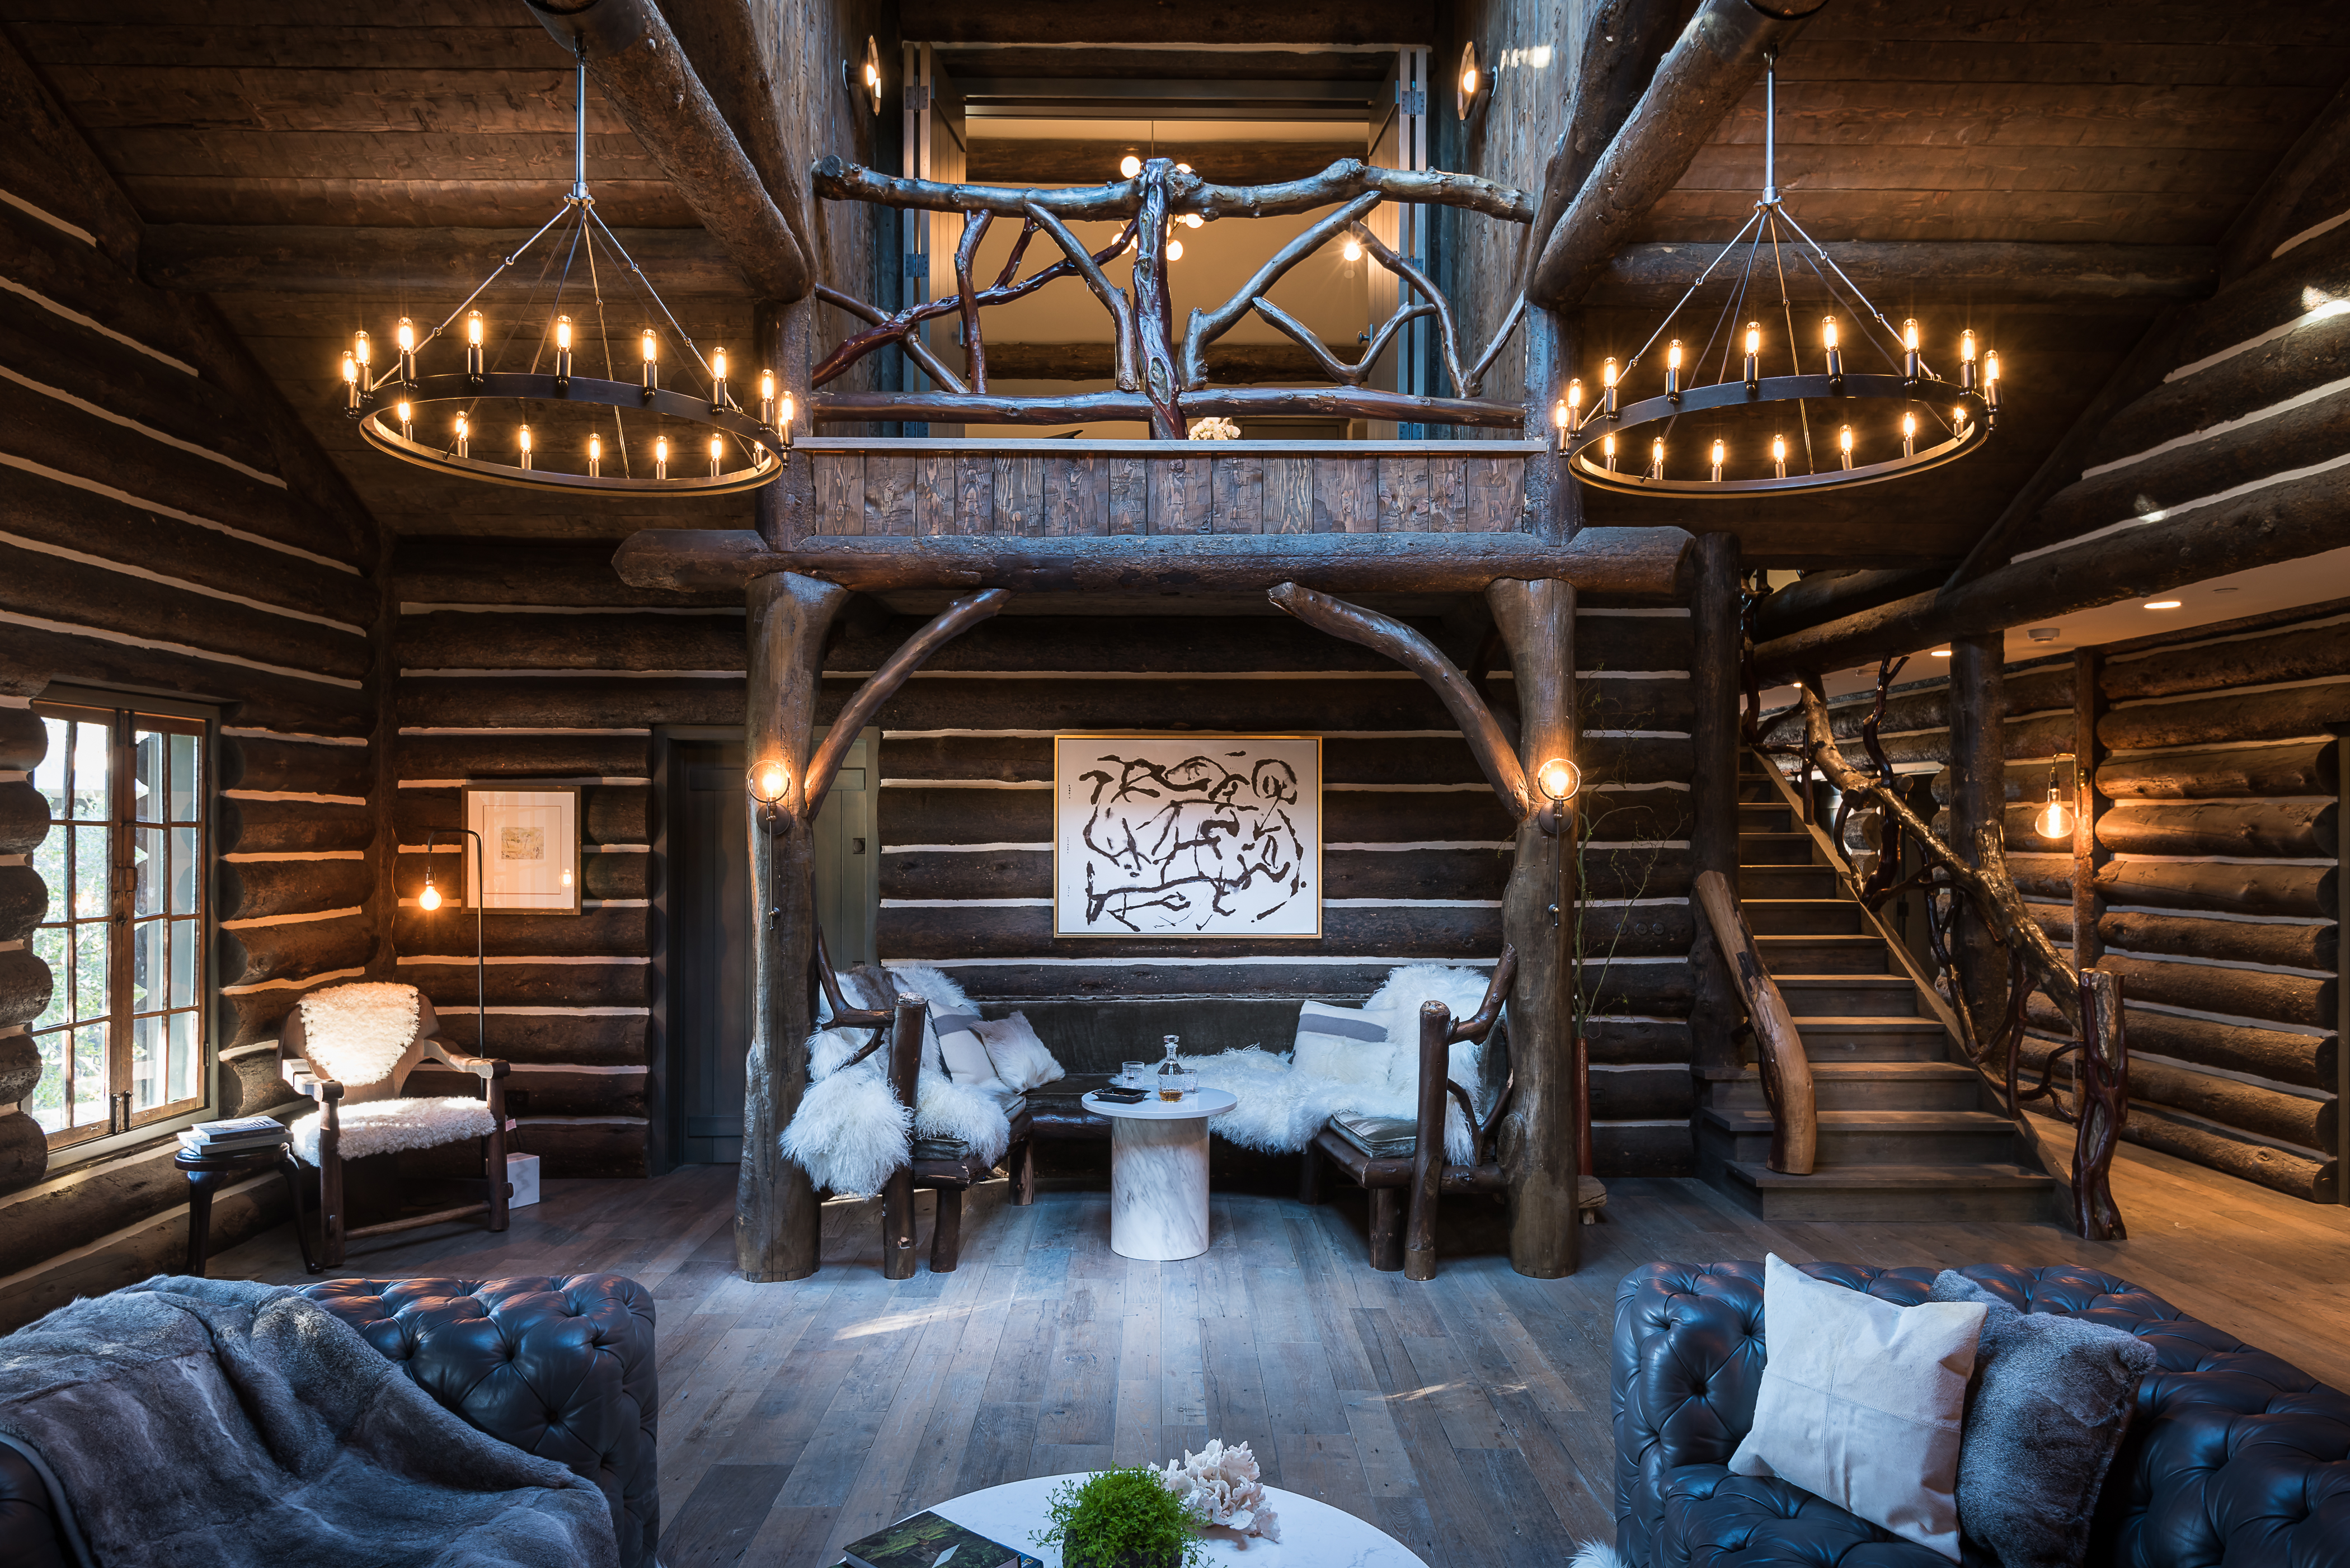 Luxurious rustic canyon log cabin with wild past lists for for Extravagant log homes